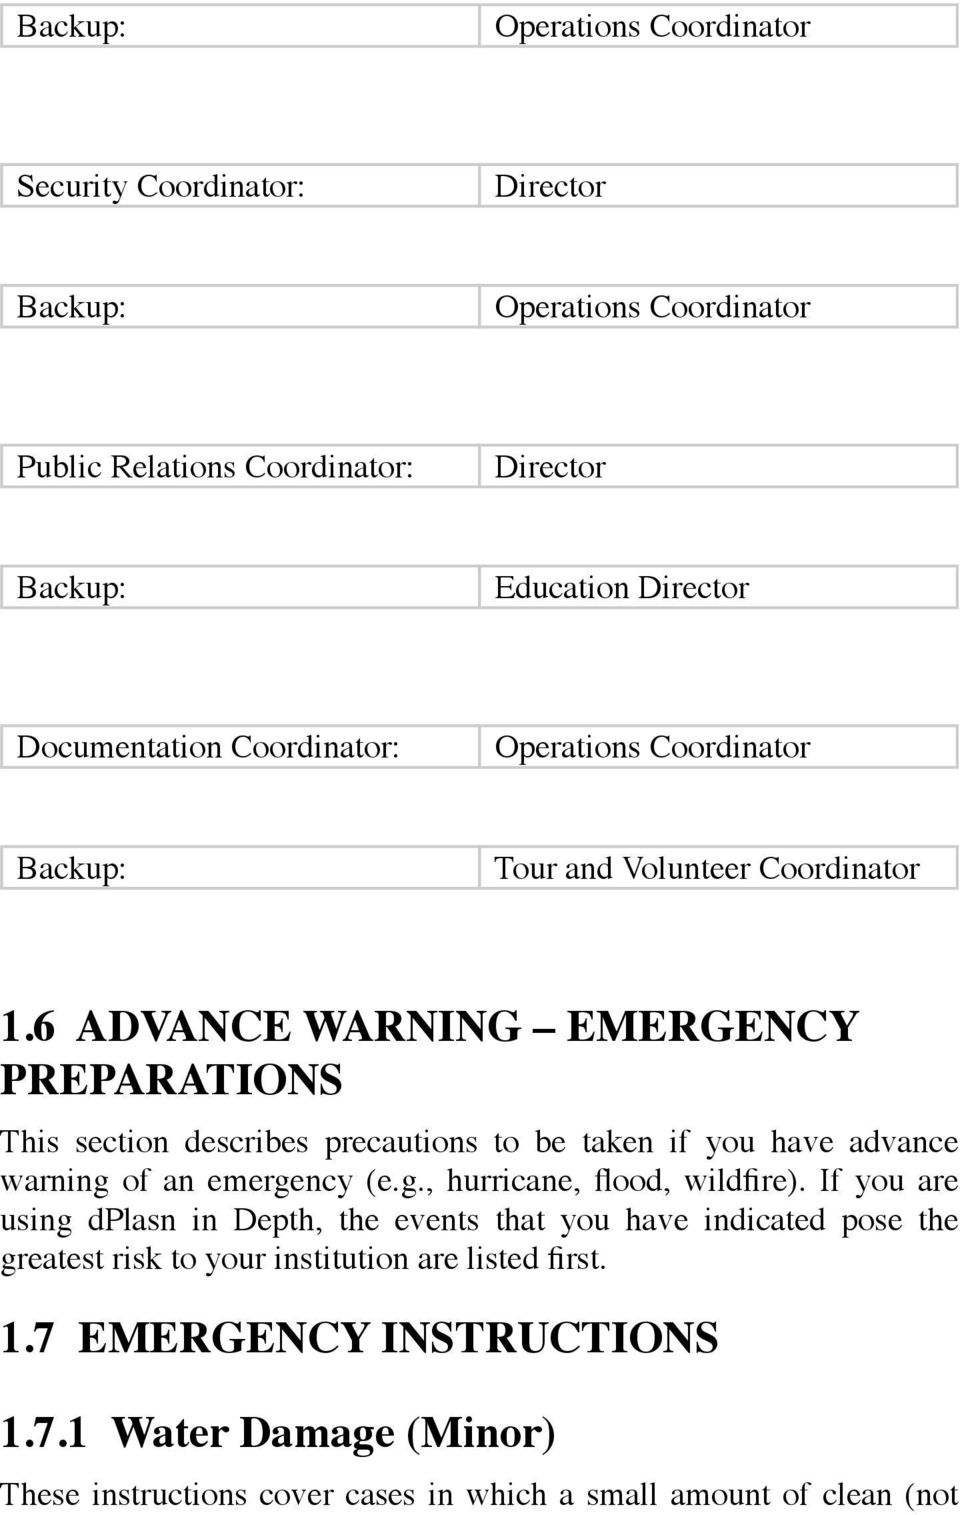 6 ADVANCE WARNING EMERGENCY PREPARATIONS This section describes precautions to be taken if you have advance warning of an emergency (e.g., hurricane, flood, wildfire).